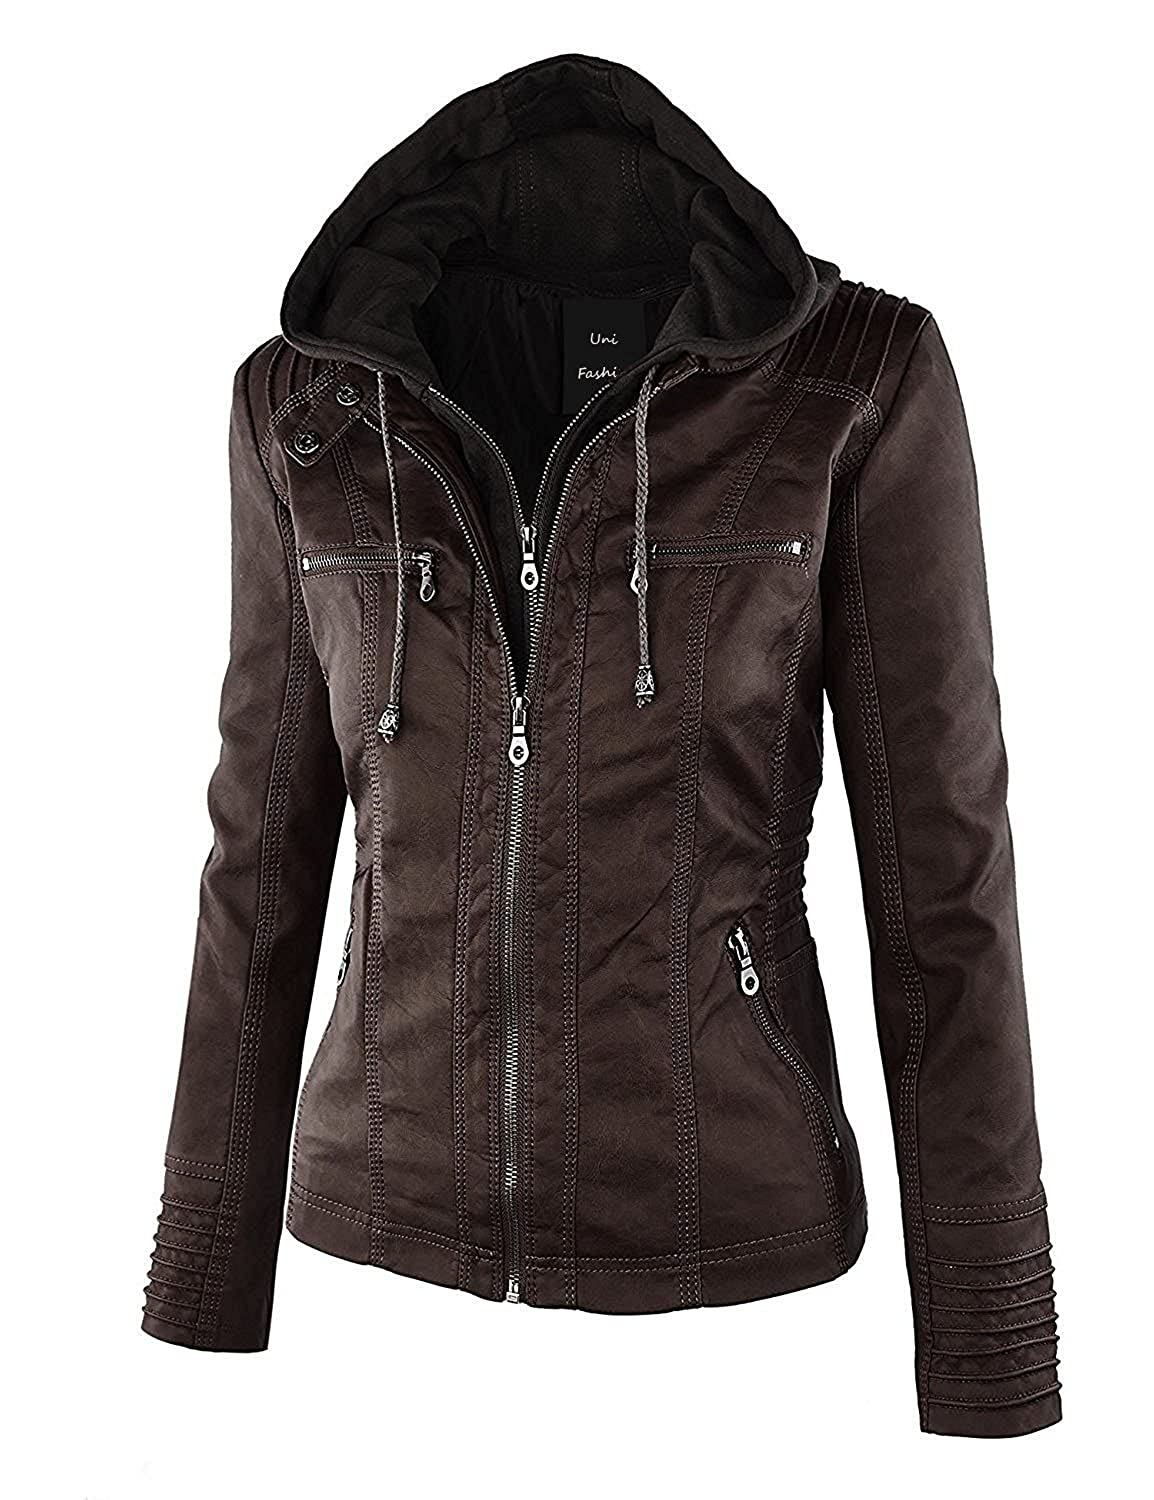 Brown1 Unifashion Womens Hooded Faux Leather Slim Jacket (XS7XL)